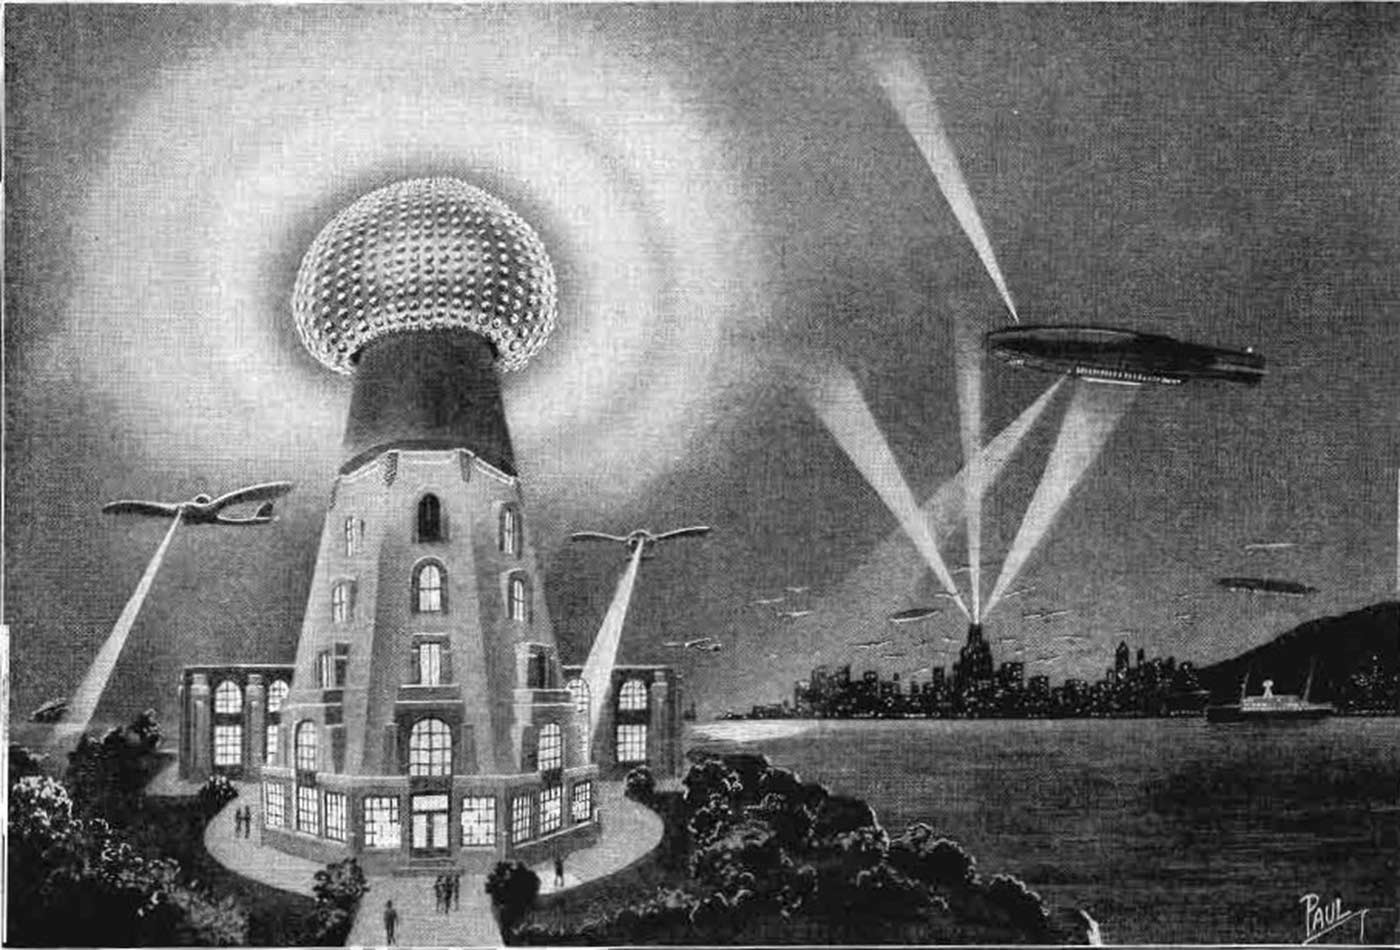 A 1925 artist's conception of what Nikola Tesla's wireless power transmission system might look like in the future